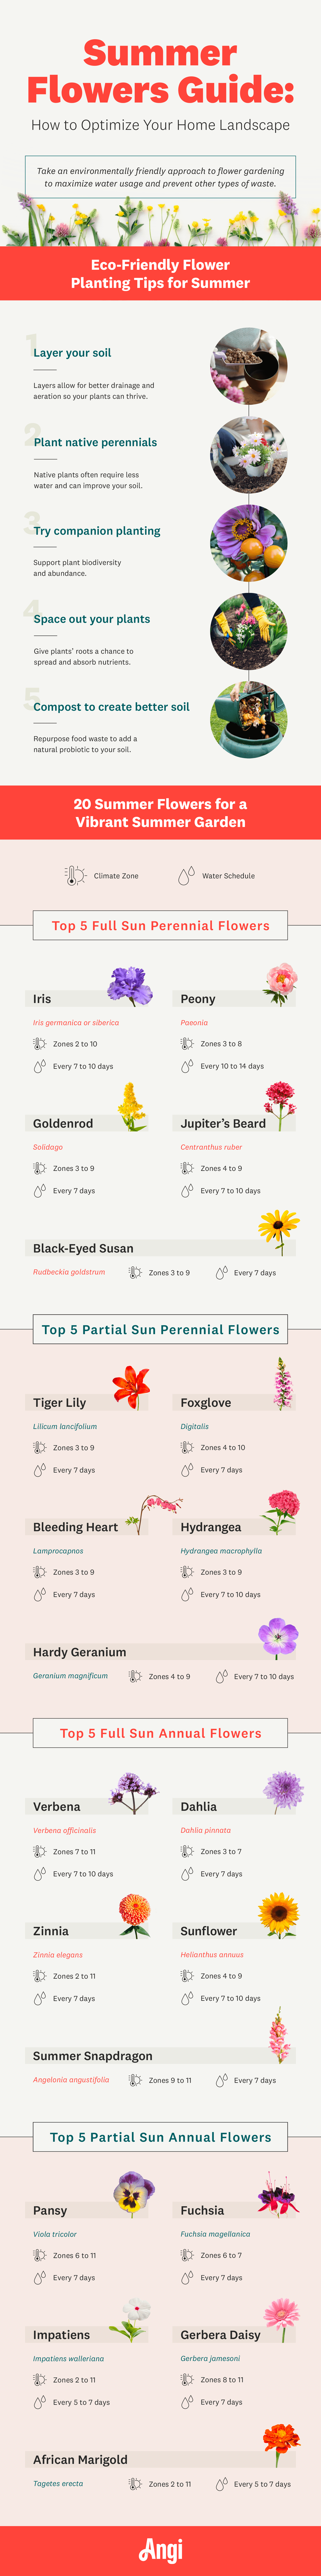 summer-flowers-guide-infographic